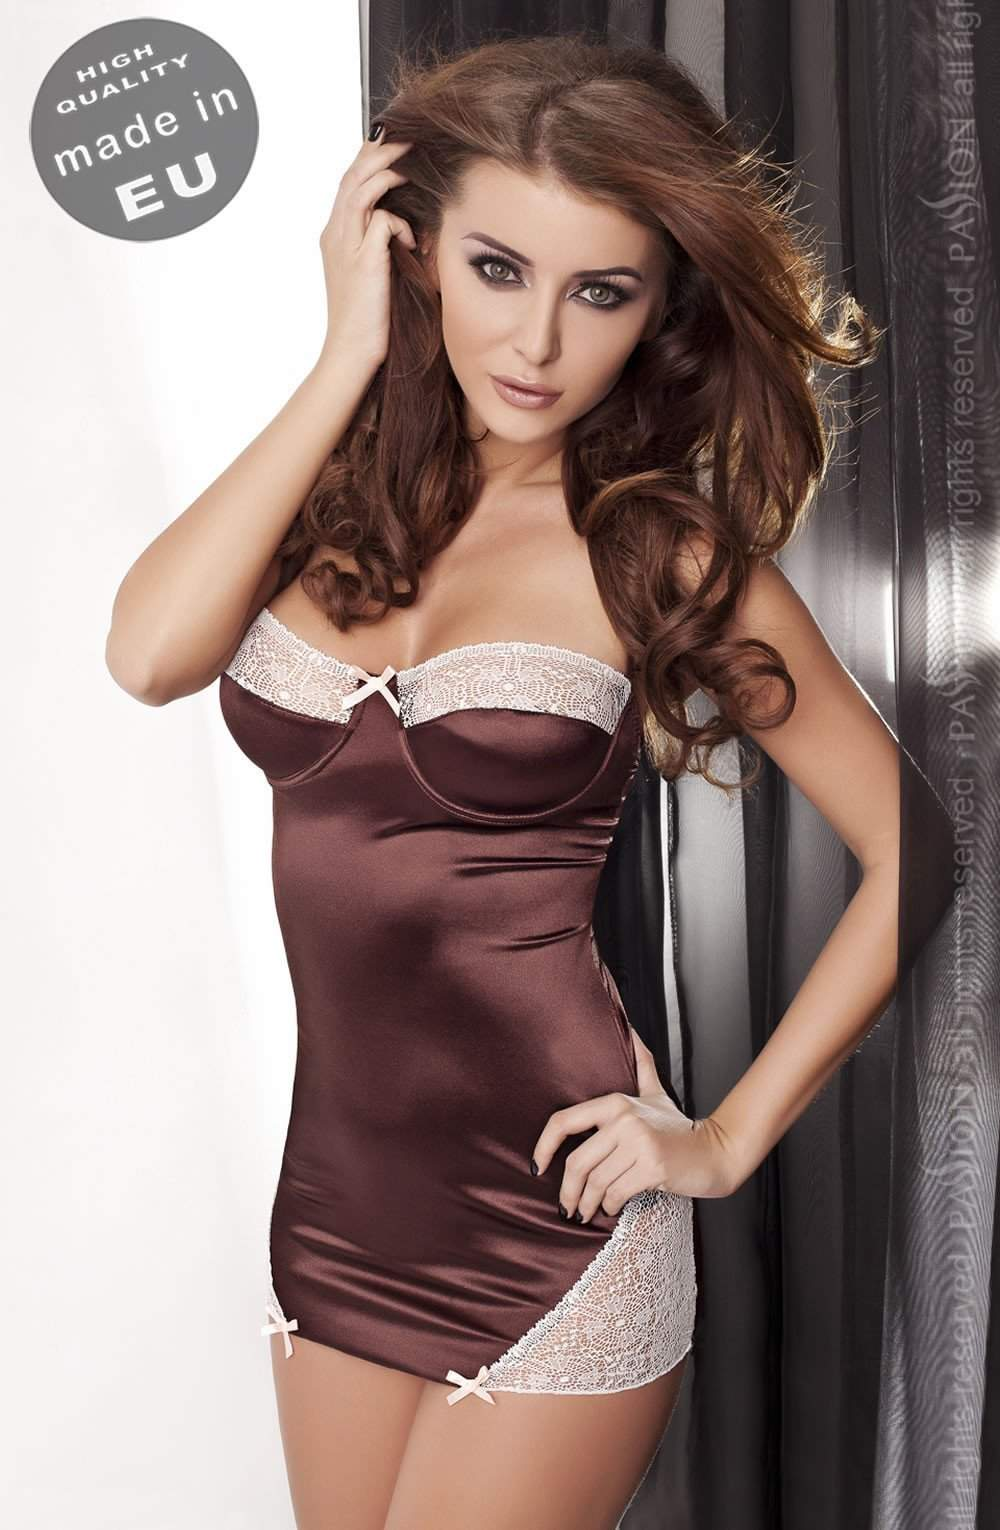 Omega Chemise by Passion - Passion - Katys Boutique Lingerie USA